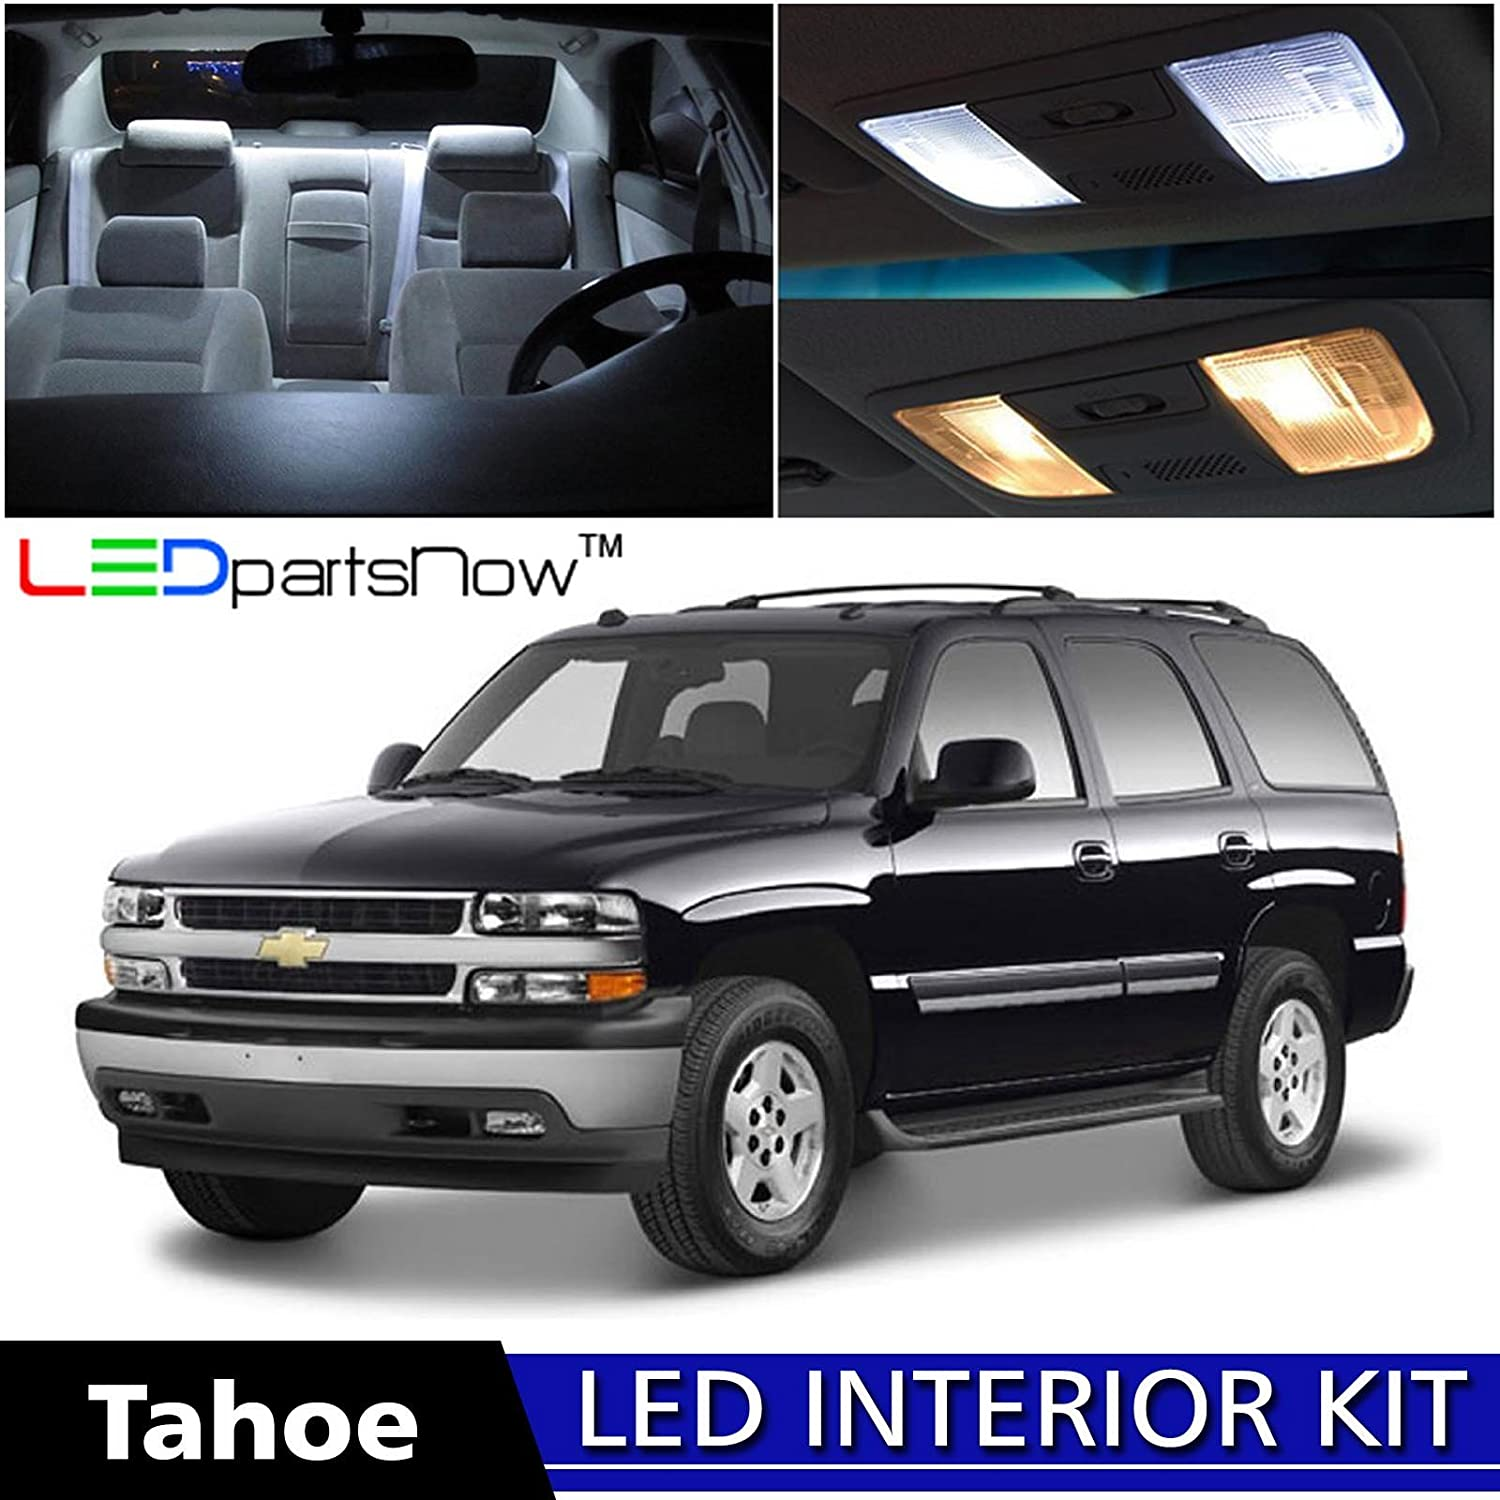 Ledpartsnow 2000 2006 Chevy Tahoe Led Interior Lights Footwell Light Wiring Diagram 1999 Gmc Sierra Accessories Replacement Package Kit 18 Pieces White Automotive